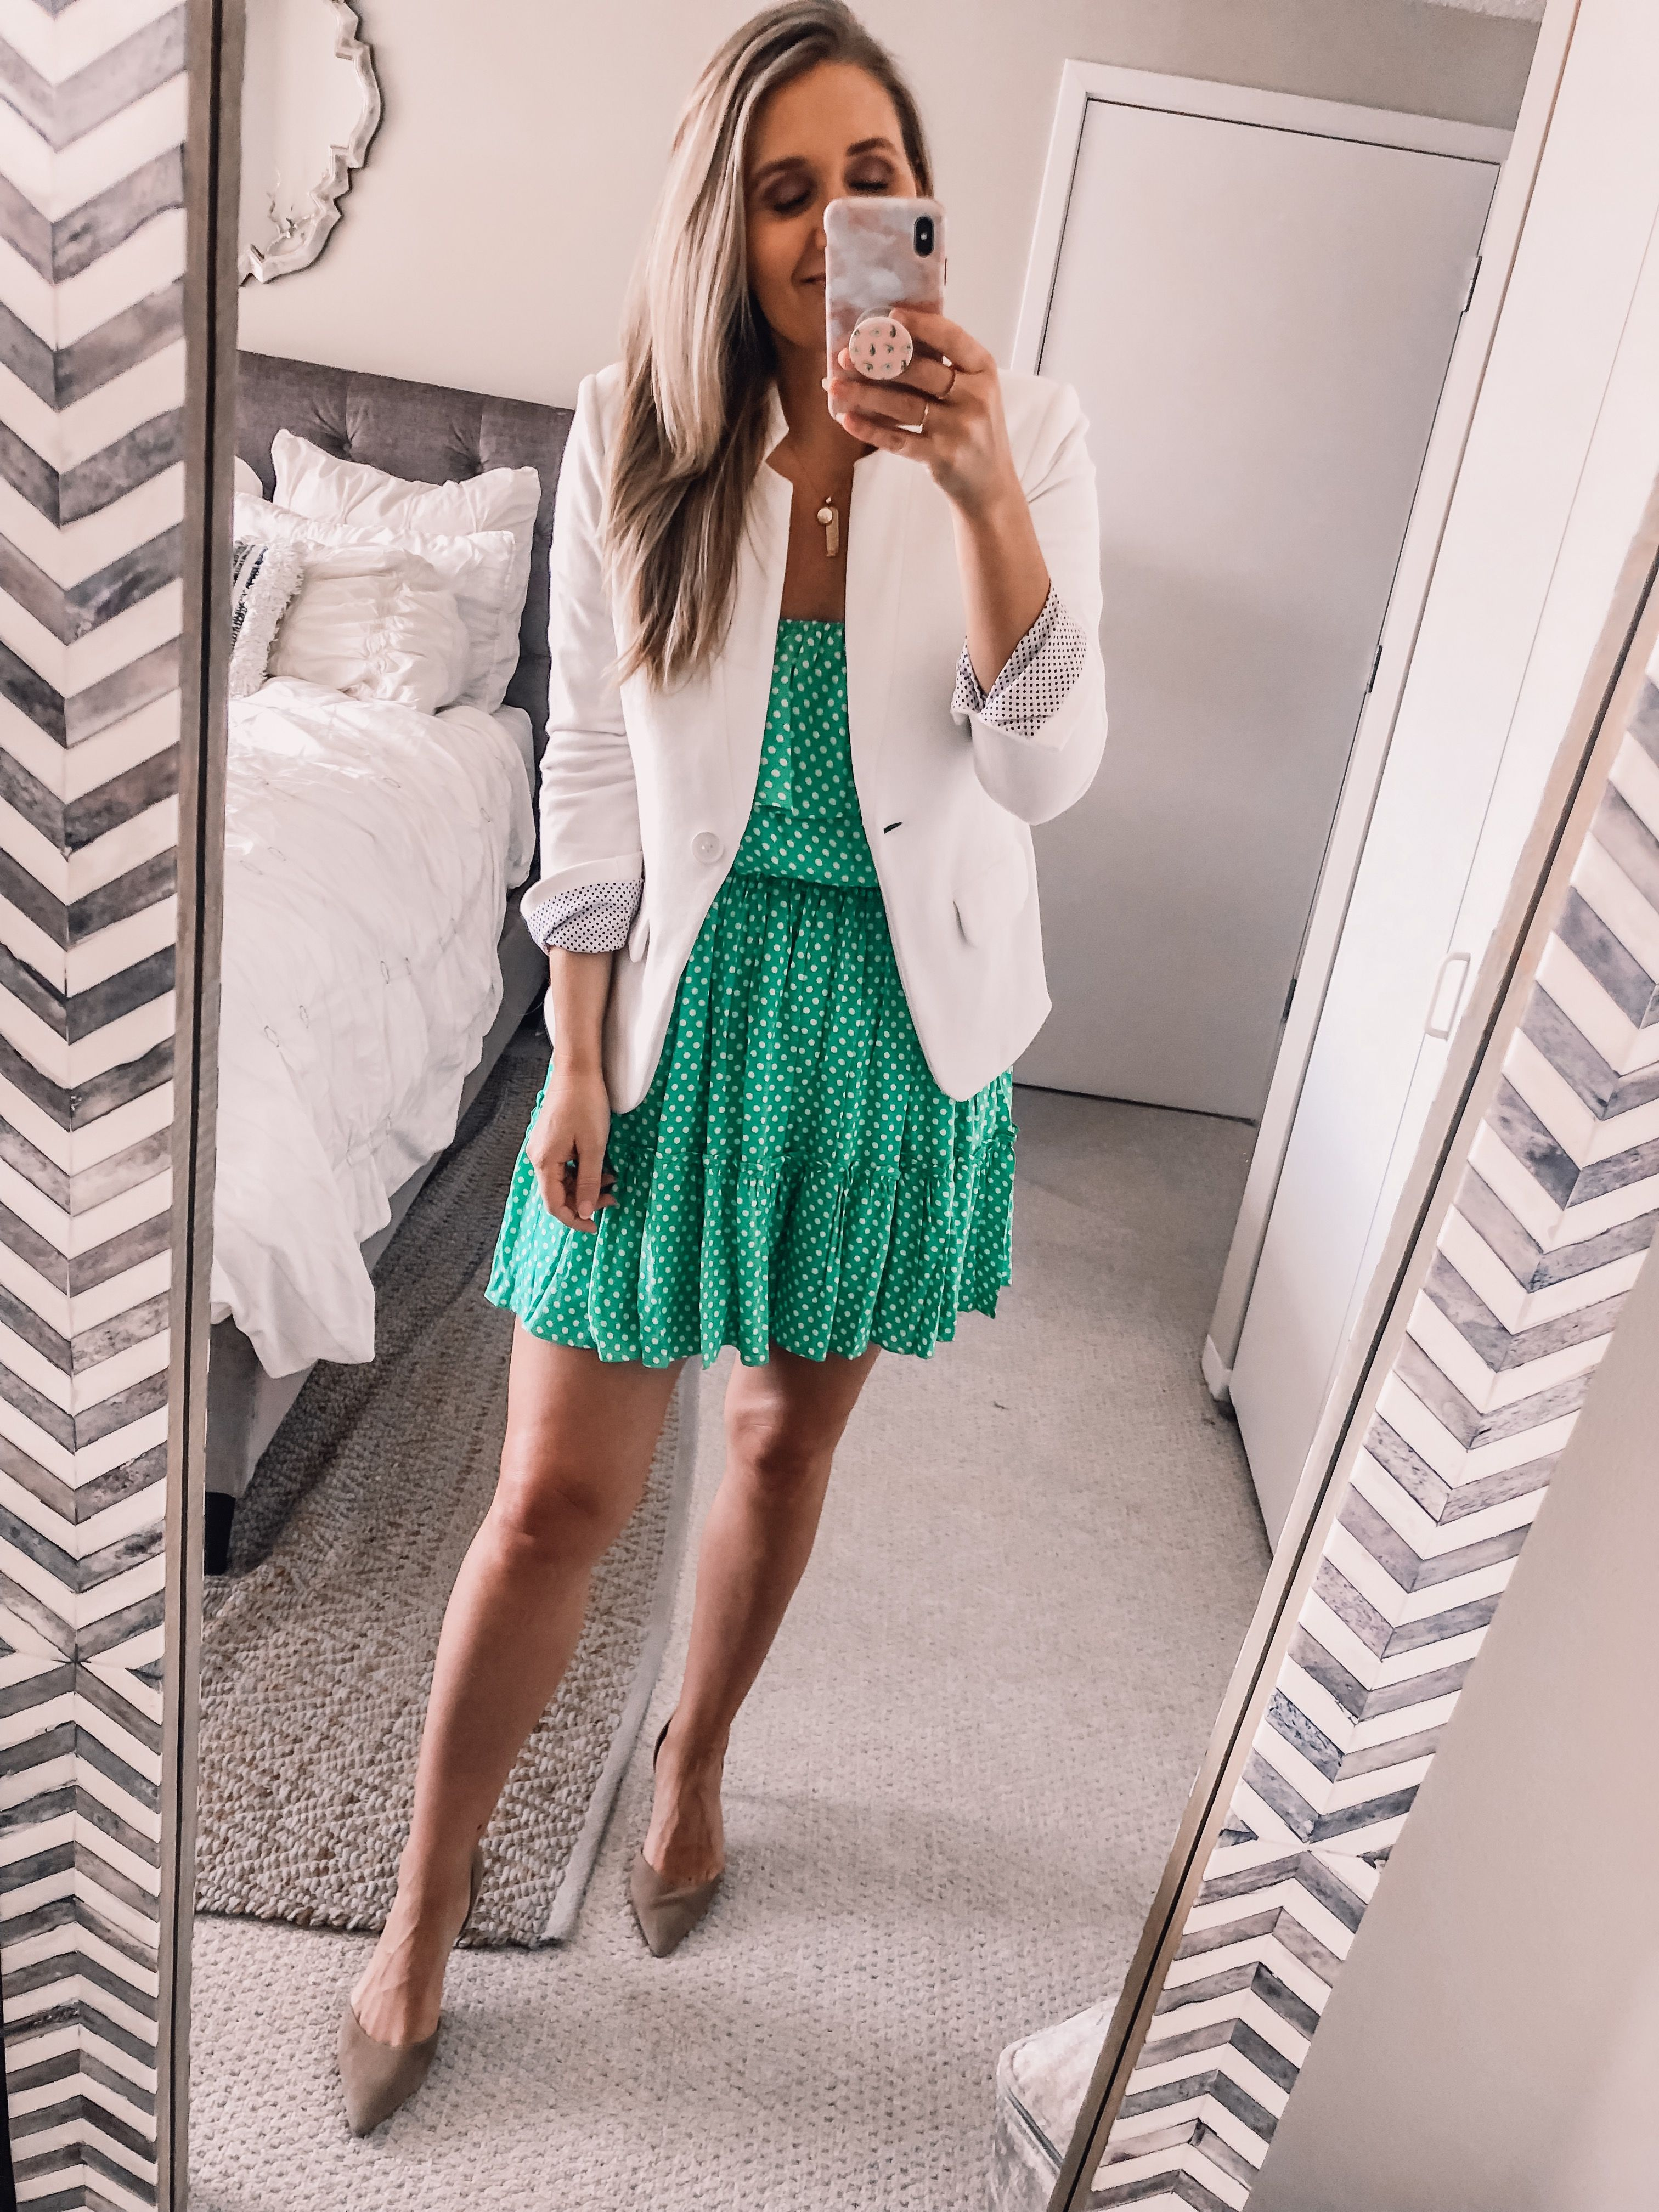 Ootd 5 13 19 How To Make A Dress Work Appropriate Visions Of Vogue Dresses For Work Green Wedding Guest Dresses White Blazer Outfits [ 4032 x 3024 Pixel ]